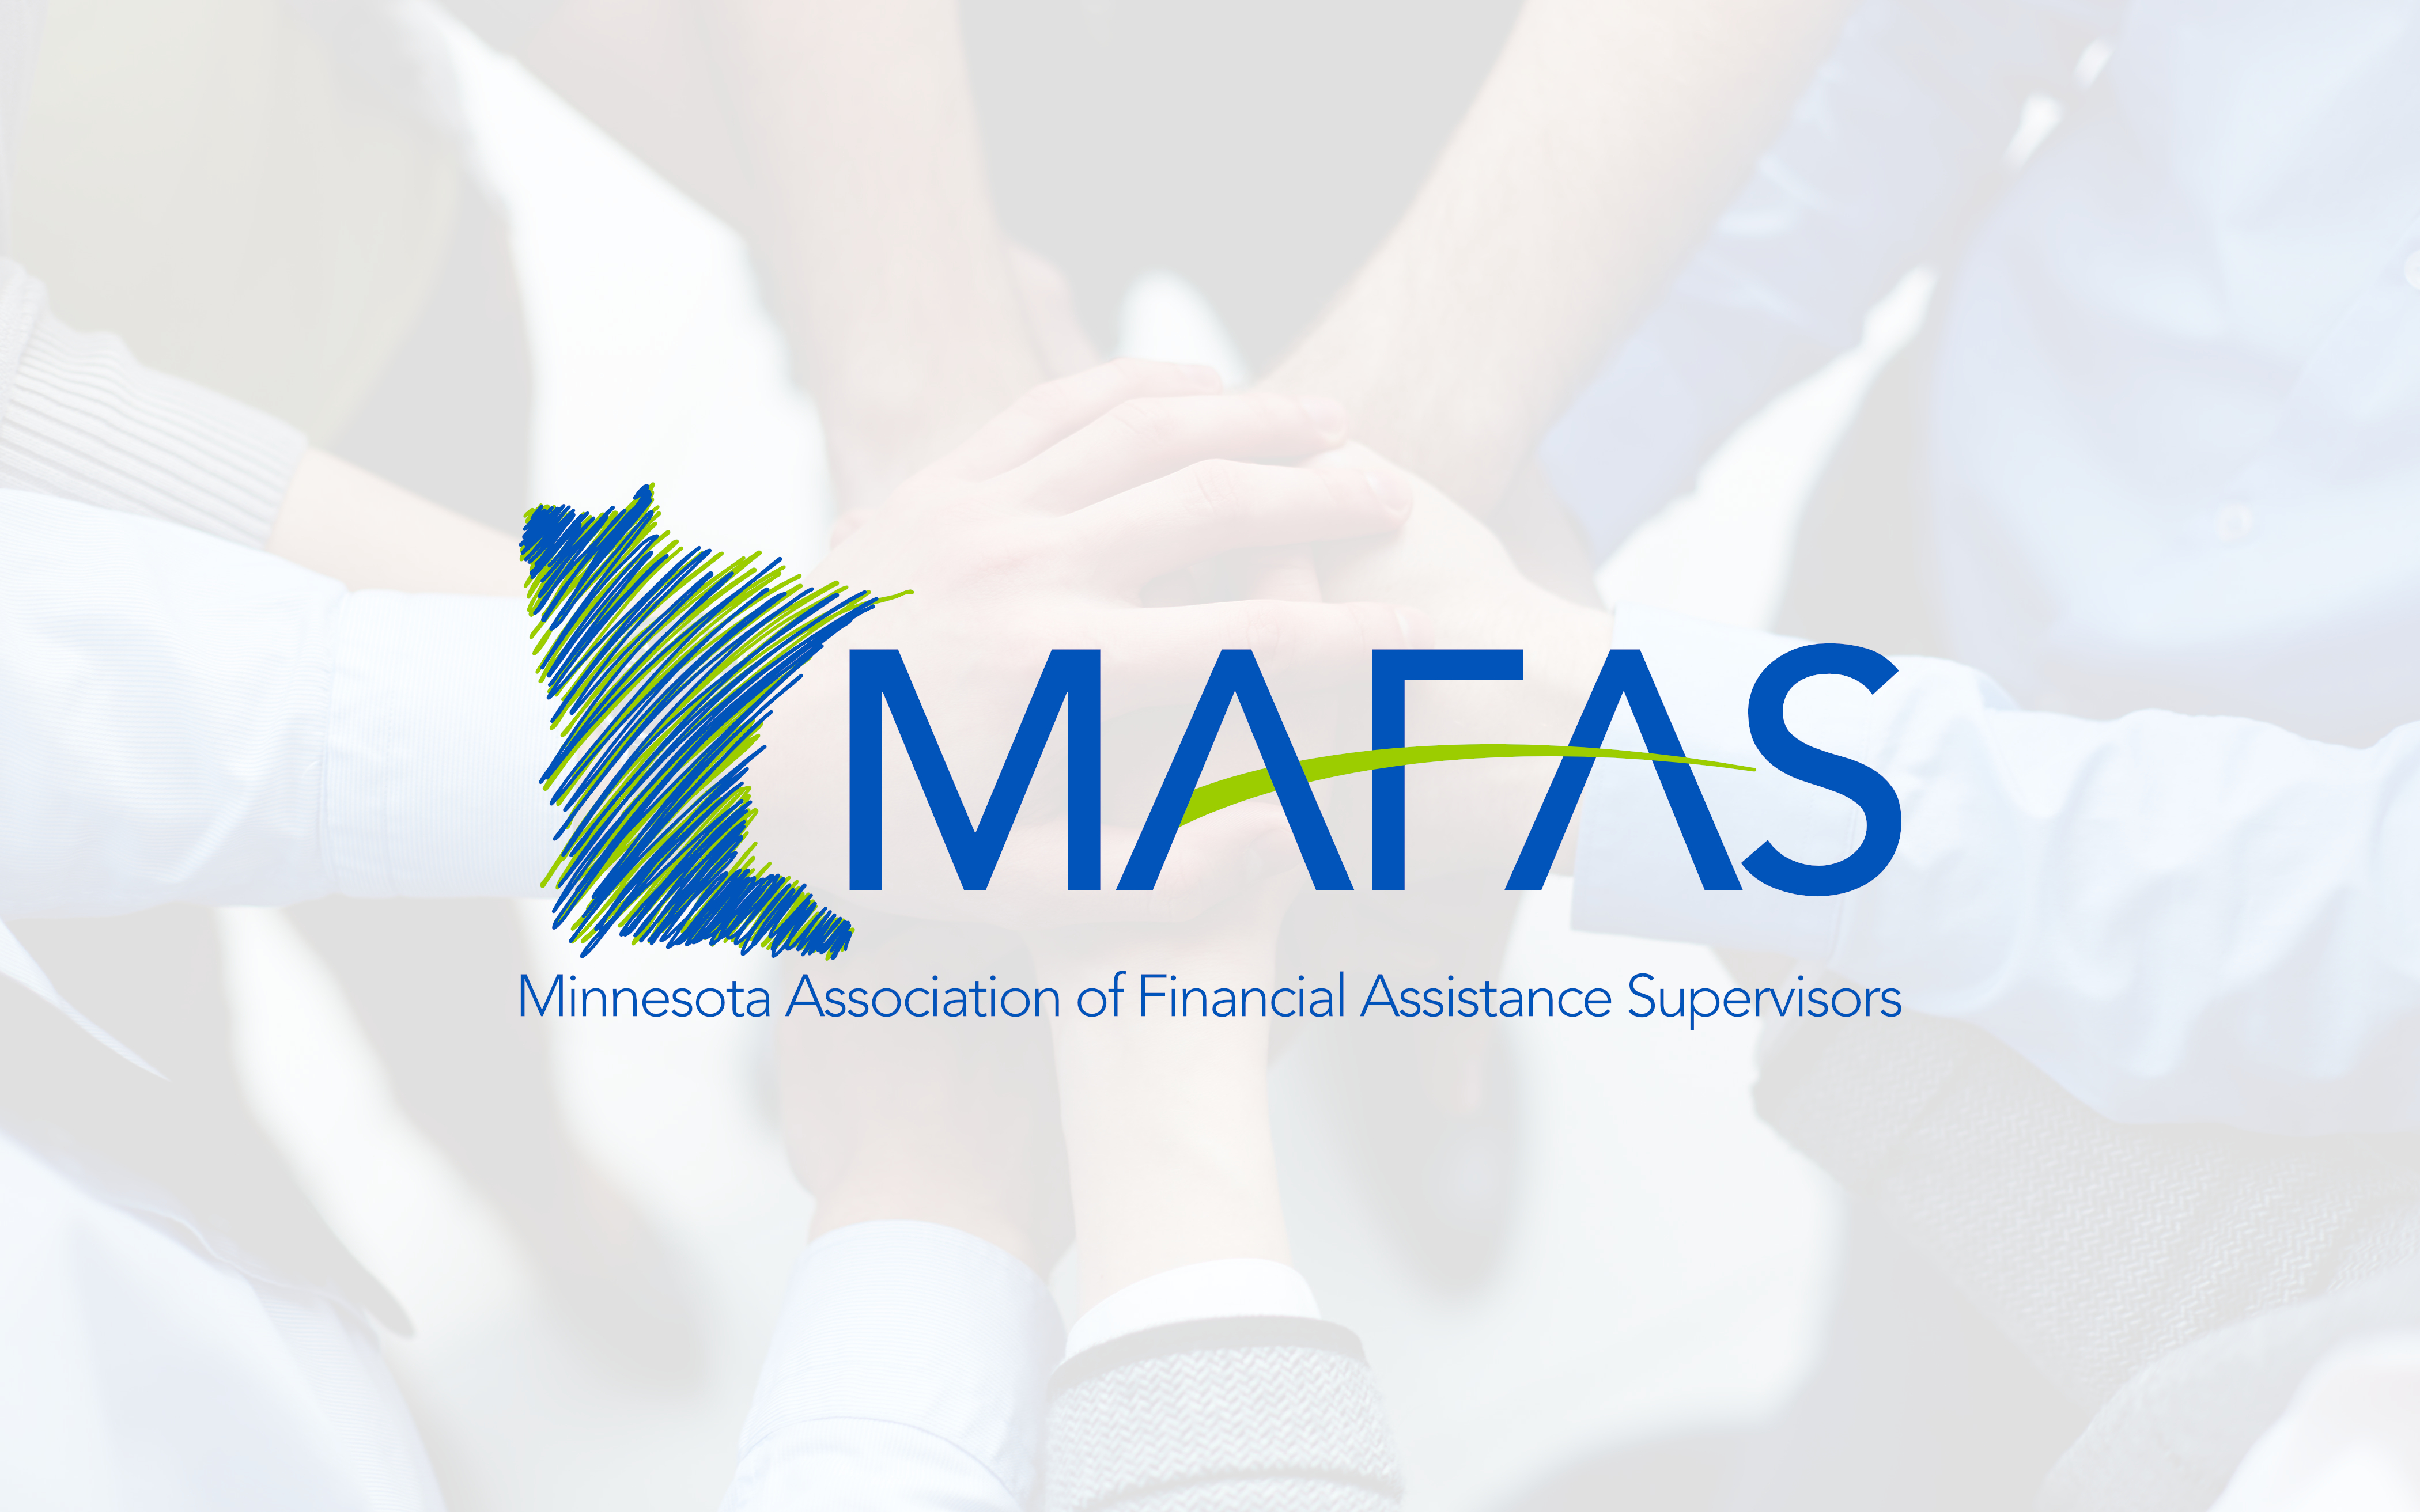 The logo for MAFAS, superimposed on an image of people putting their hands on each other.